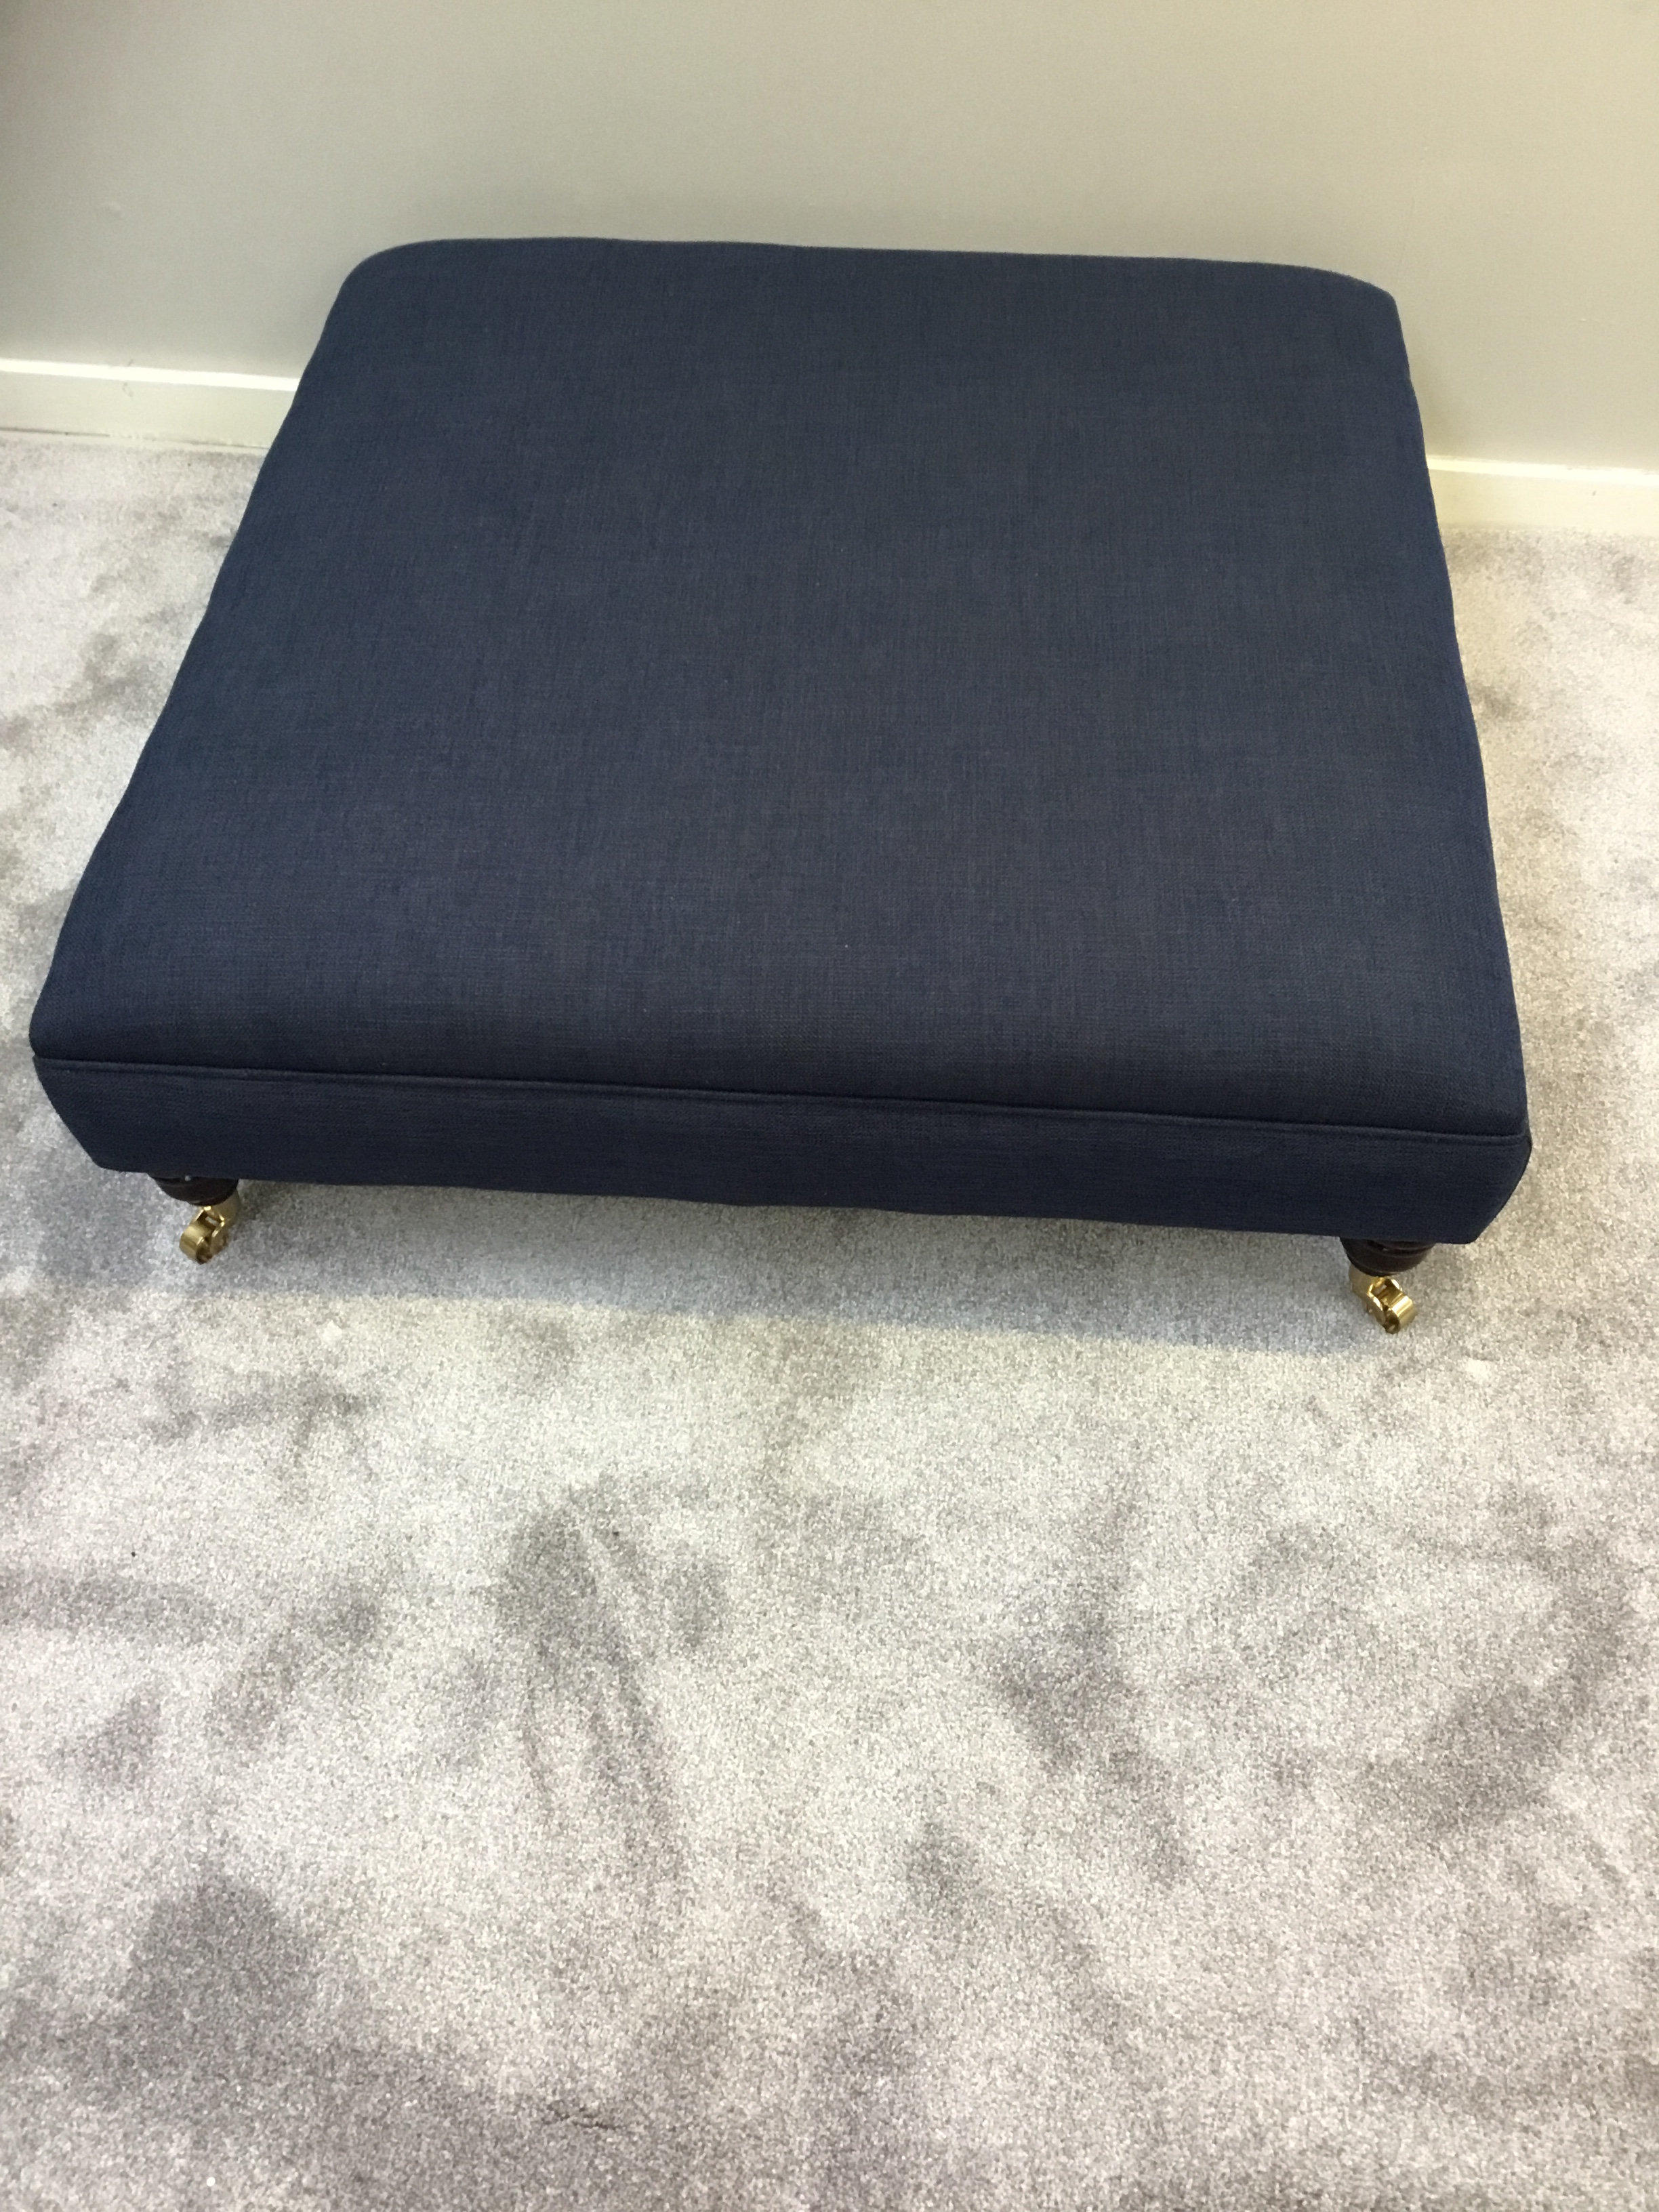 Extra Large Flat Top Footstool Navy Blue Linen Fabric Coffee